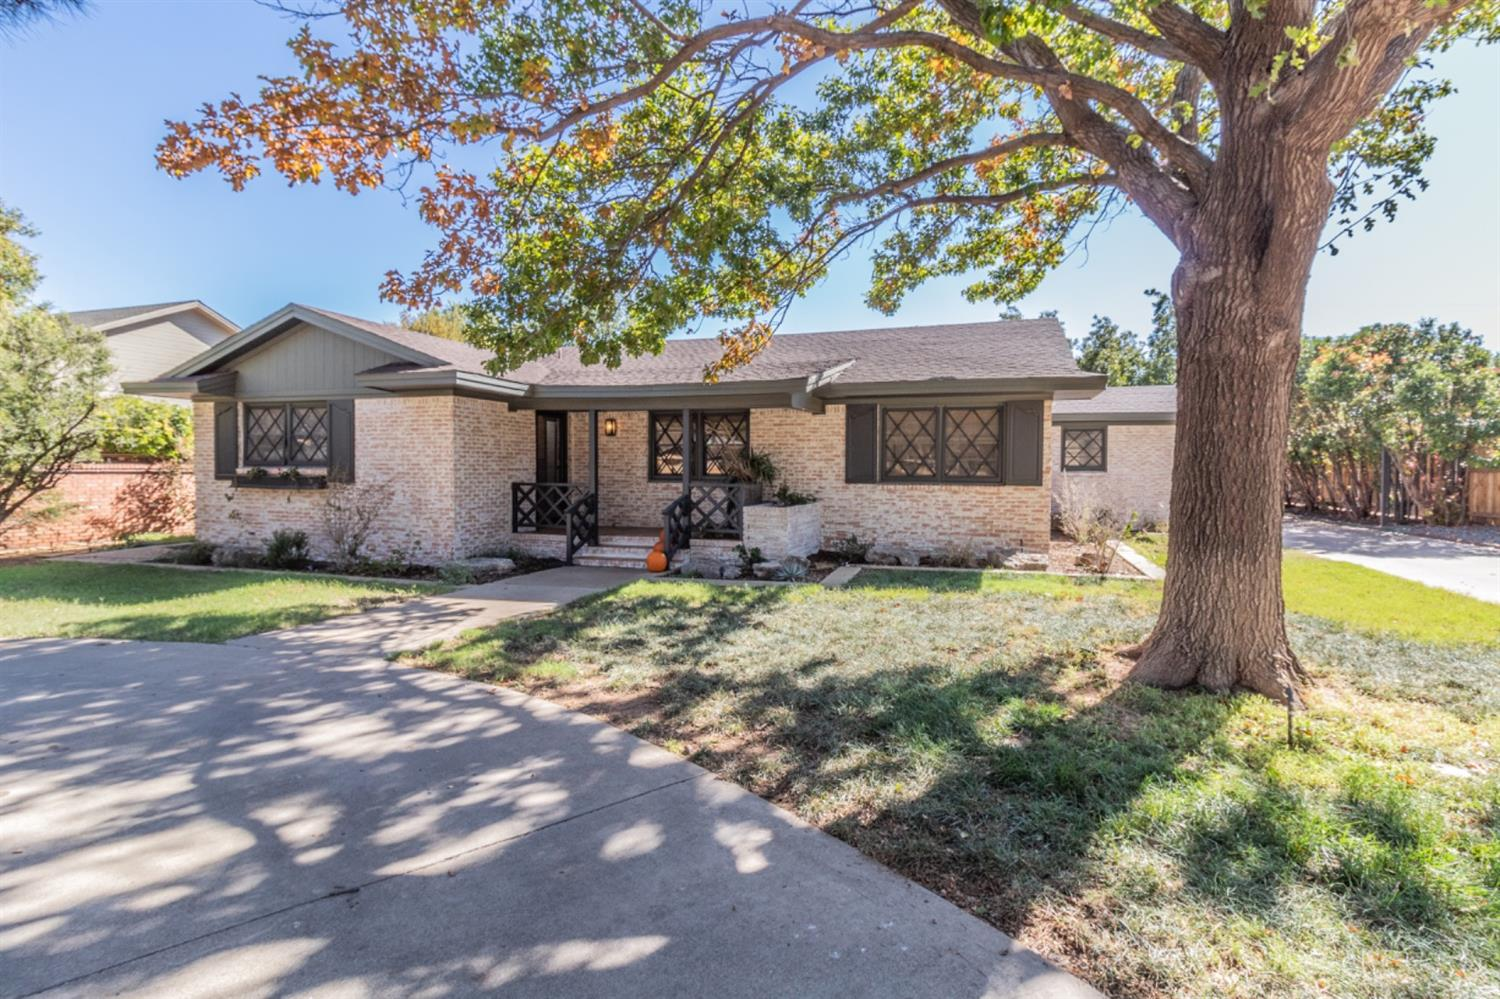 This modern French Country home is located on the BLVD of Lubbock--19th Street. The freshly landscaped yard and abundance of parking is perfect for those looking for a garden home and/or those looking for a low maintenance single family home. A 3/2/3 with gated drive to parking and fully equipped guest house--truly a gem!  The main house features a chef's kitchen with WOLF stove and ovens, a custom oversized island, and sleek built-in side-by-side fridge & freezer complete this dream kitchen.  Soaring vaulted ceilings in the living and kitchen areas have custom wooden beams with matching fireplace mantel.  The large master suite features a gorgeous walk-in shower and freestanding tub, double vanity with quartz, and his and her closets.  There is ample parking in rear as well as circle drive up front. Exterior of home is adorned with custom ironwork including the soon-to-be fully automated private gate to garage and rear parking. Low Voltage landscape lighting looks terrific at night.